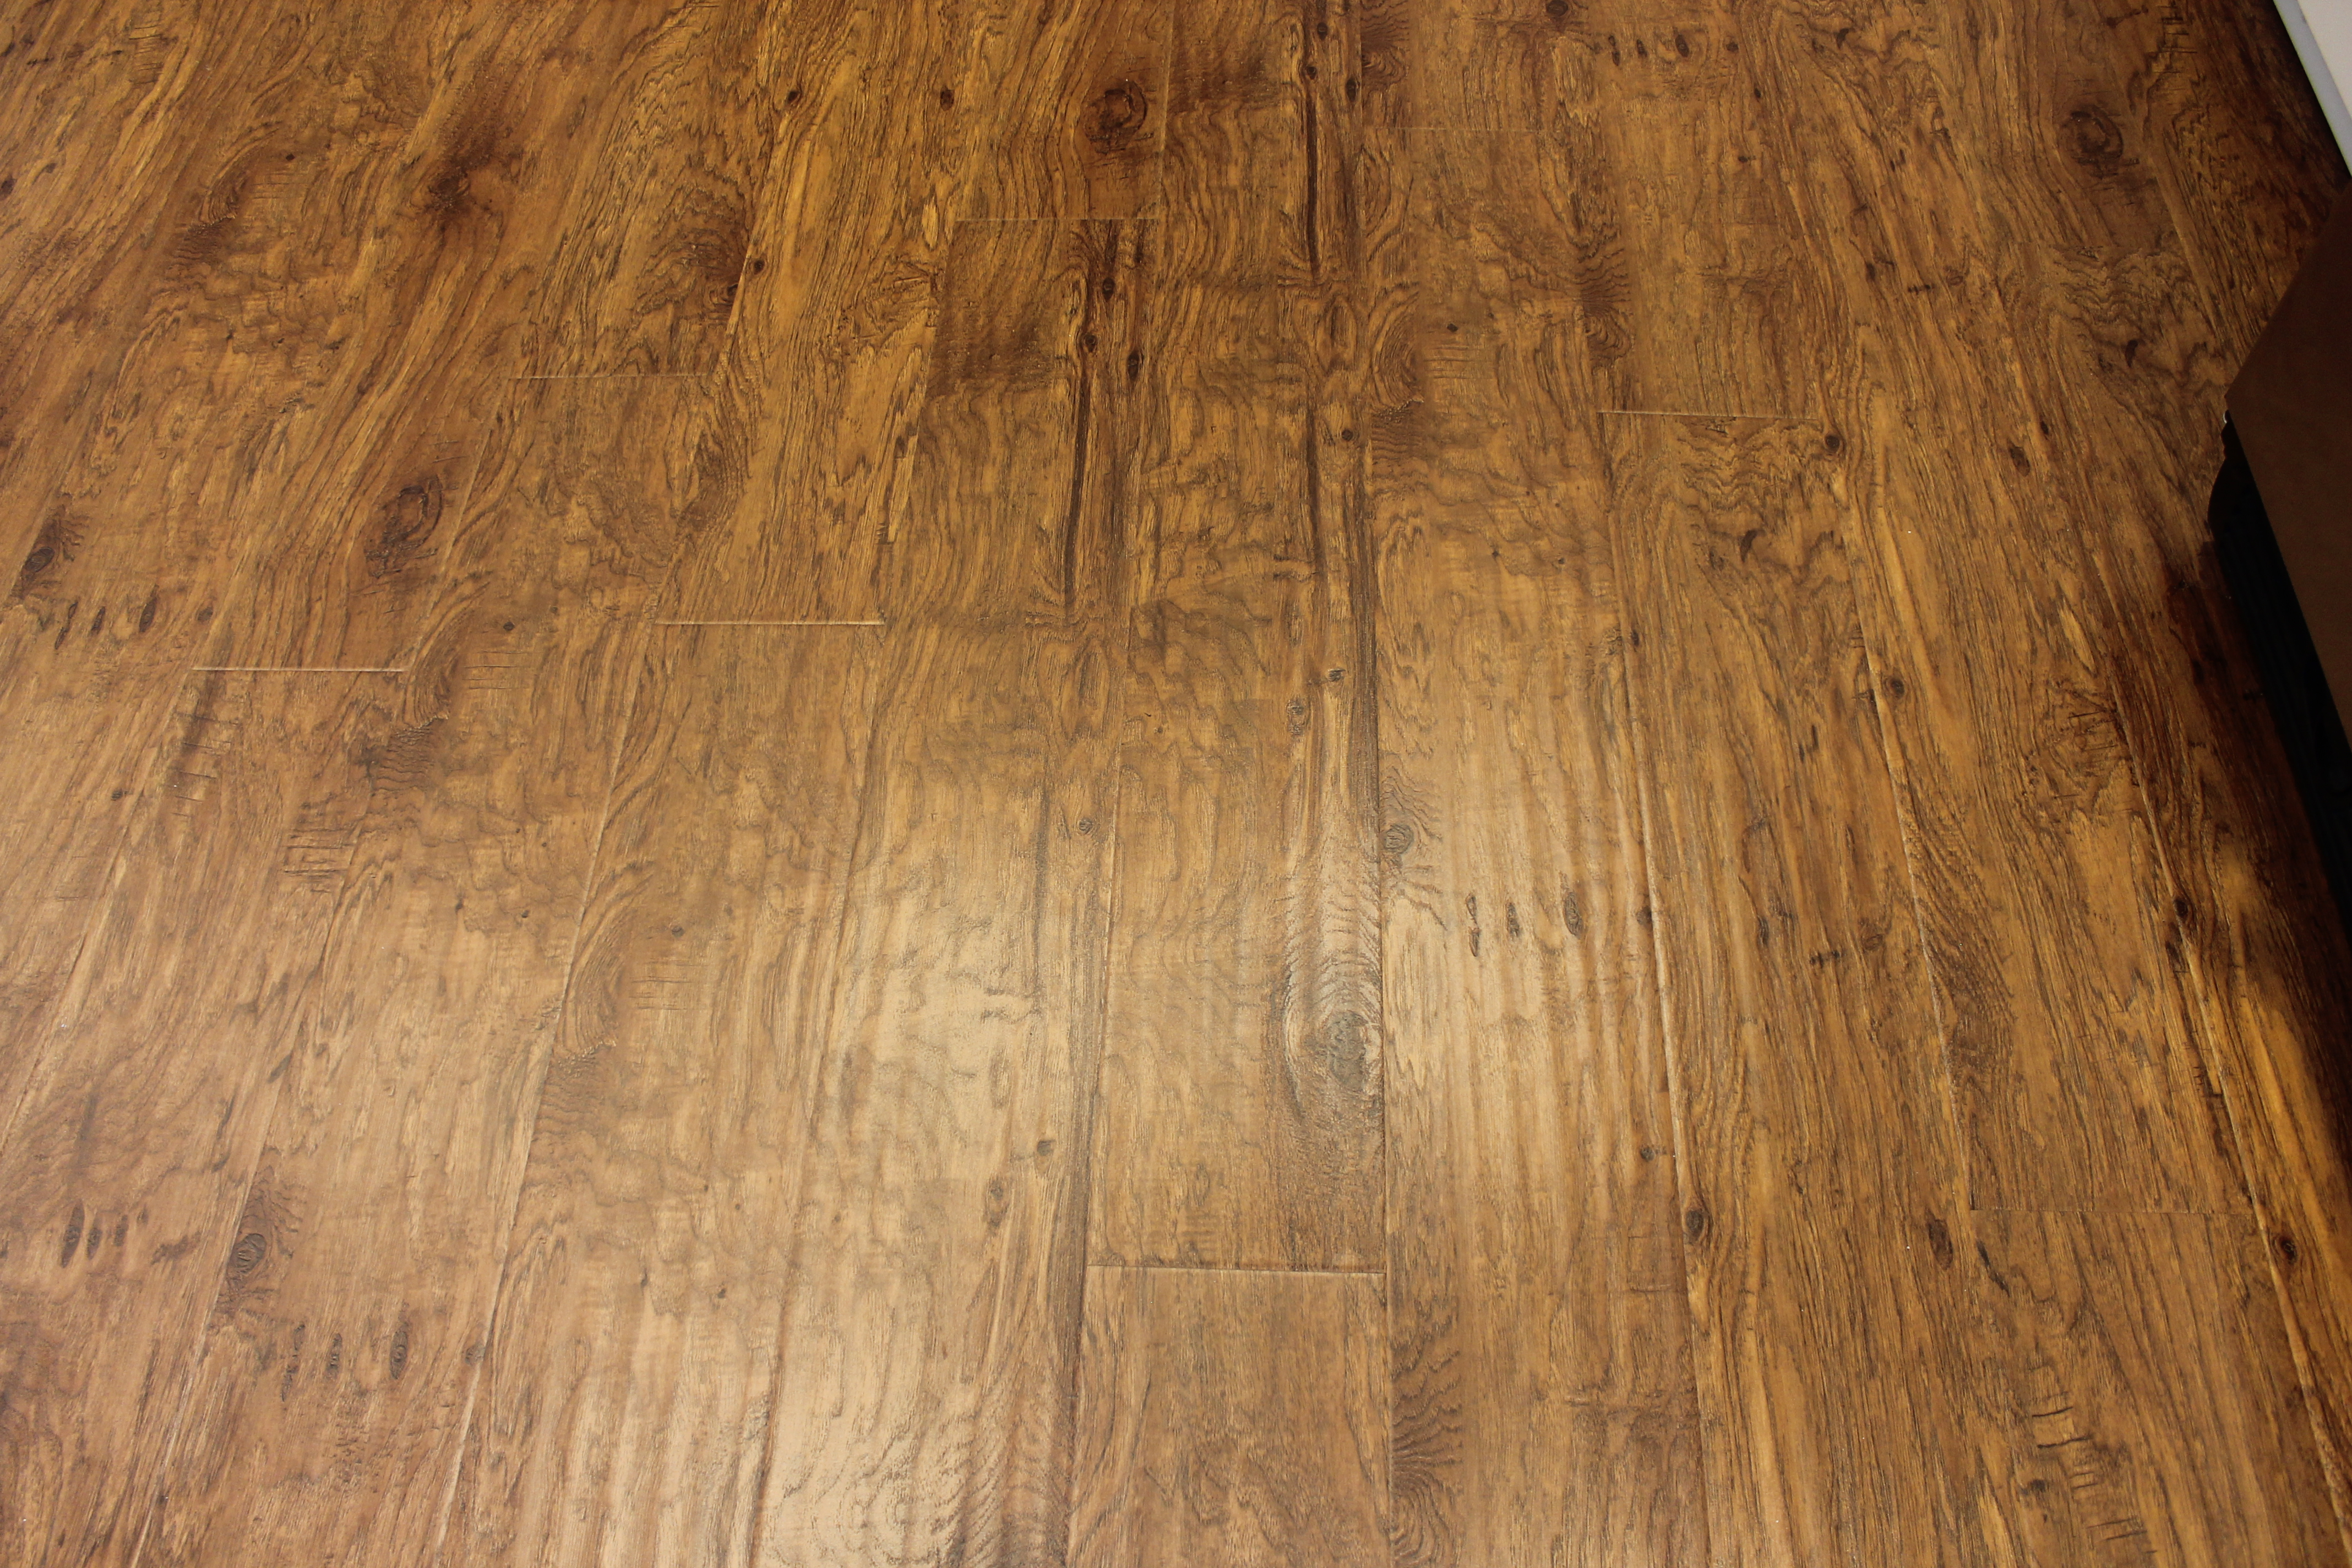 Laminate Vs Luxury Vinyl Plank Flooring